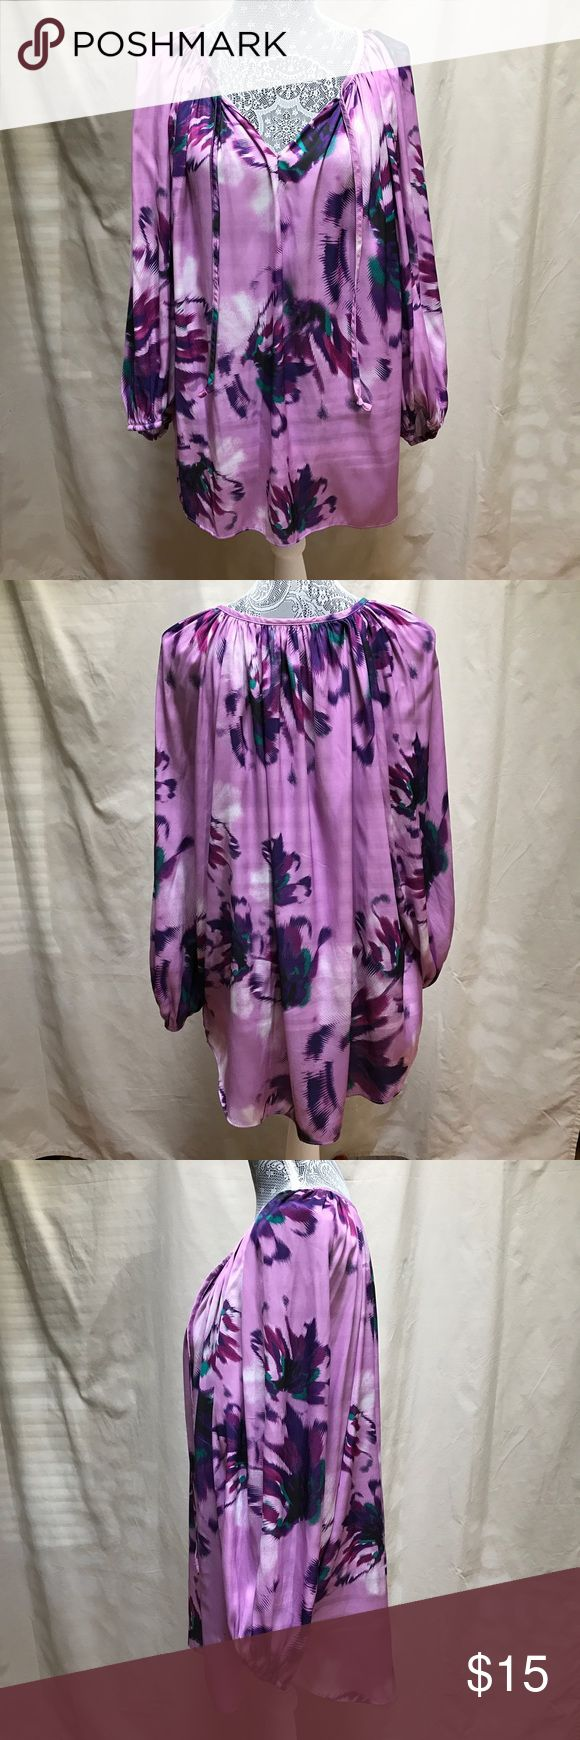 Jennifer Lopez Woman Floral Tunic Blouse 2X Jennifer Lopez Purple floral Tunic Blouse 2X 👚 Super soft and lightweight. Classic neckline with strings to tie a bow and long sleeve with elastic wrist. EUC, no rips, snags or stains. Jennifer Lopez Tops Tunics